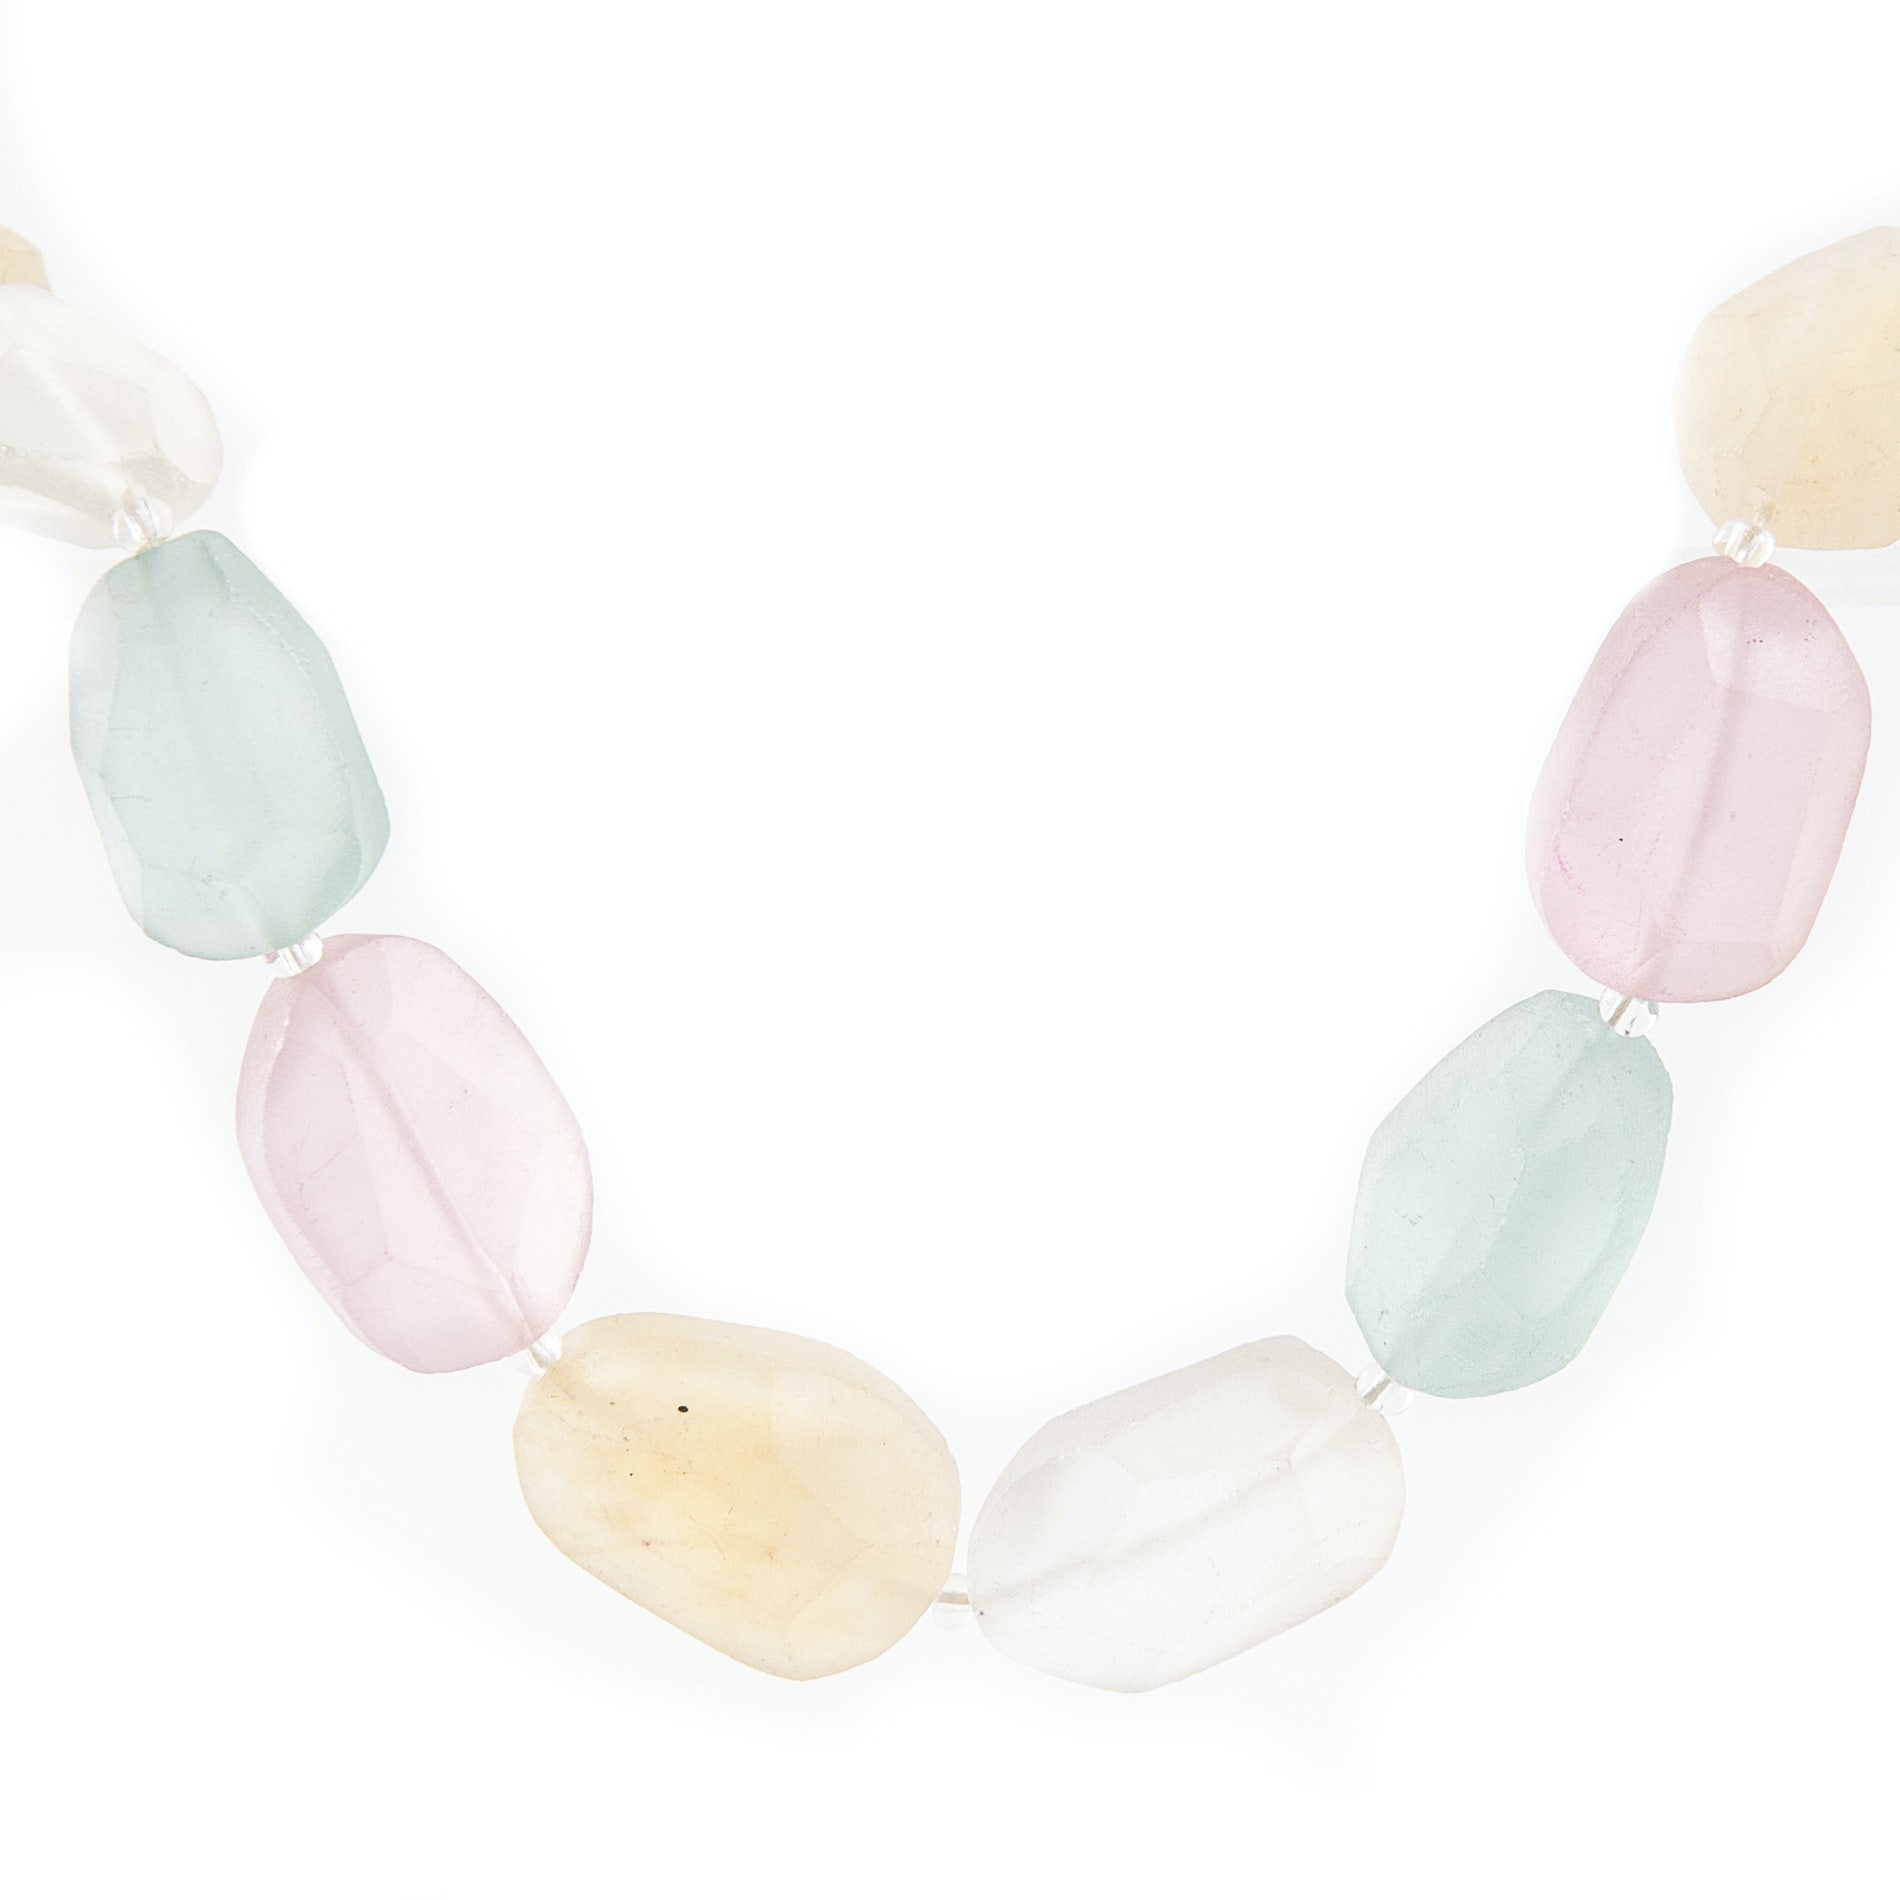 Kenneth Lane Tumbled Glass Necklace